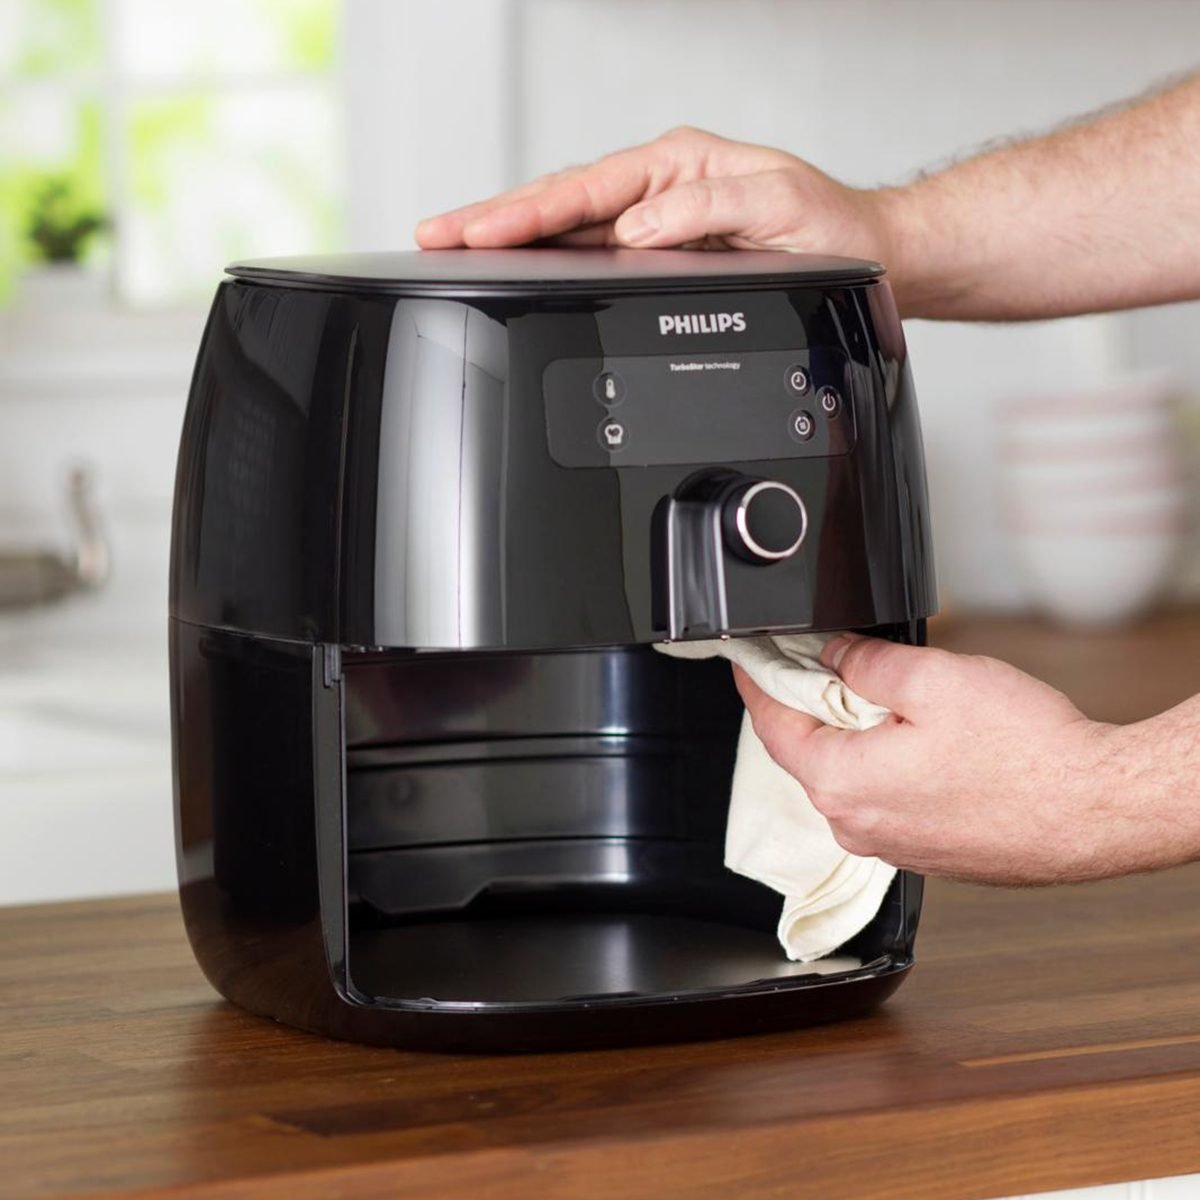 cleaning air fryer